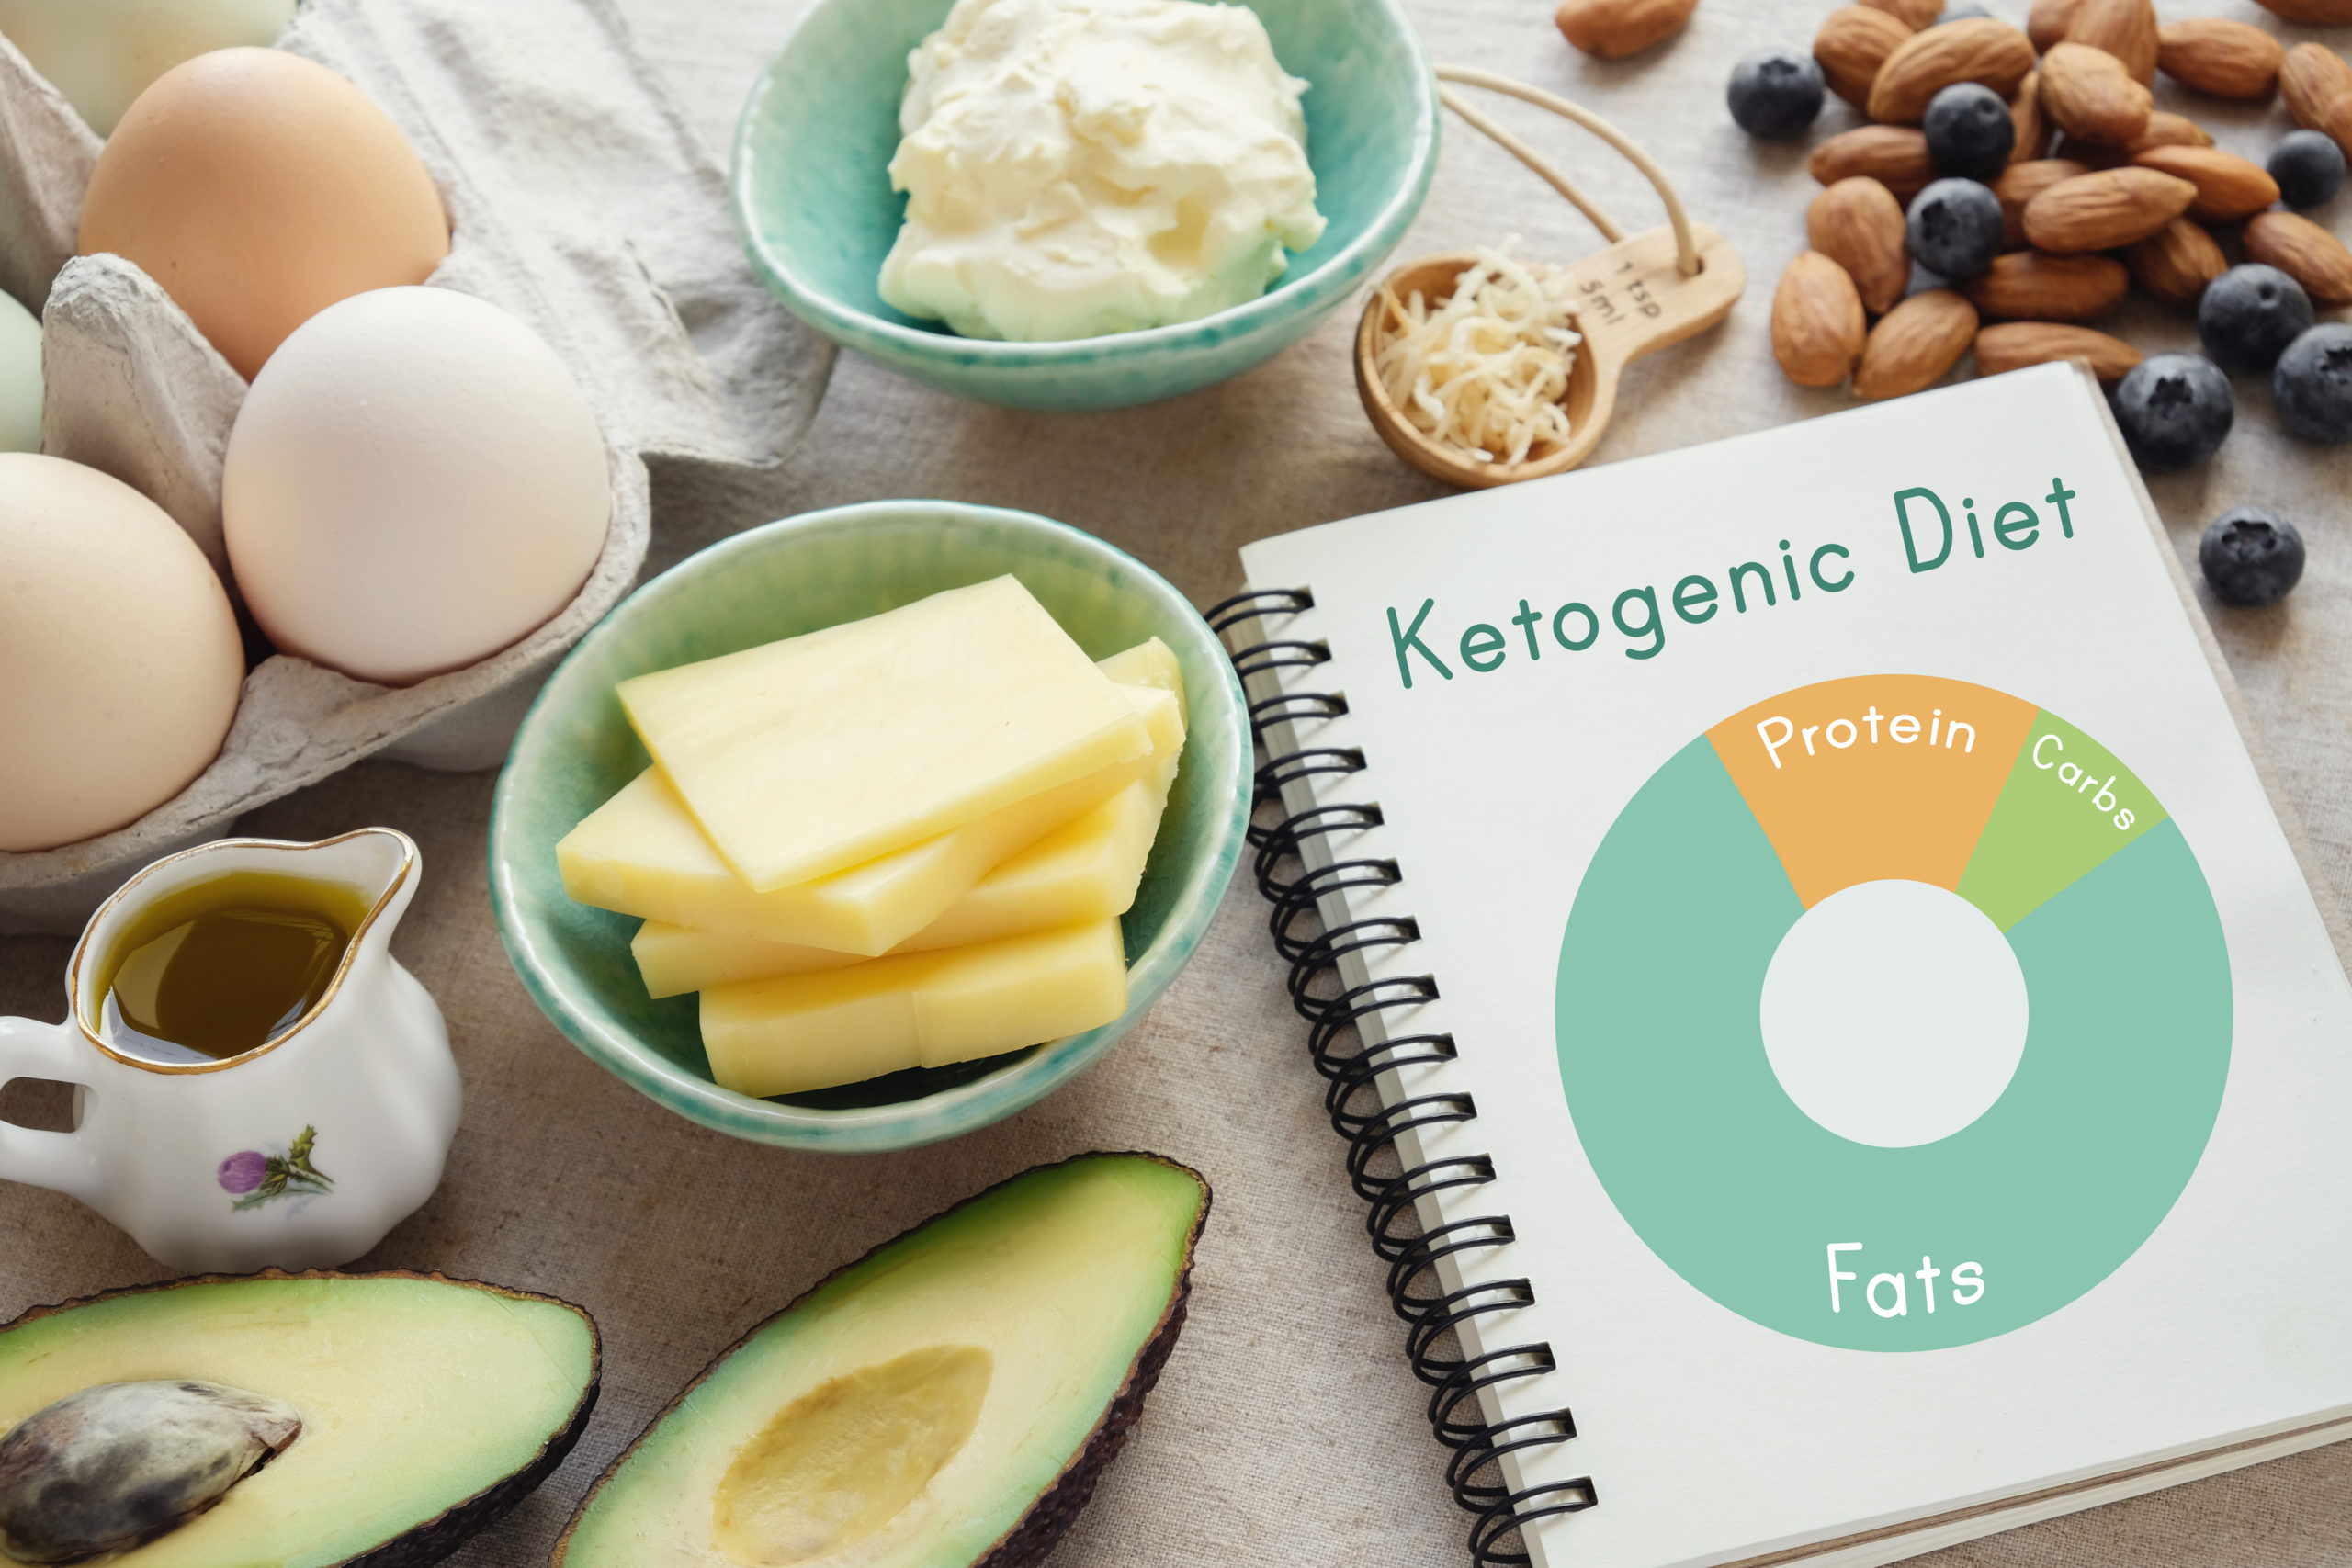 What is Keto Editorial